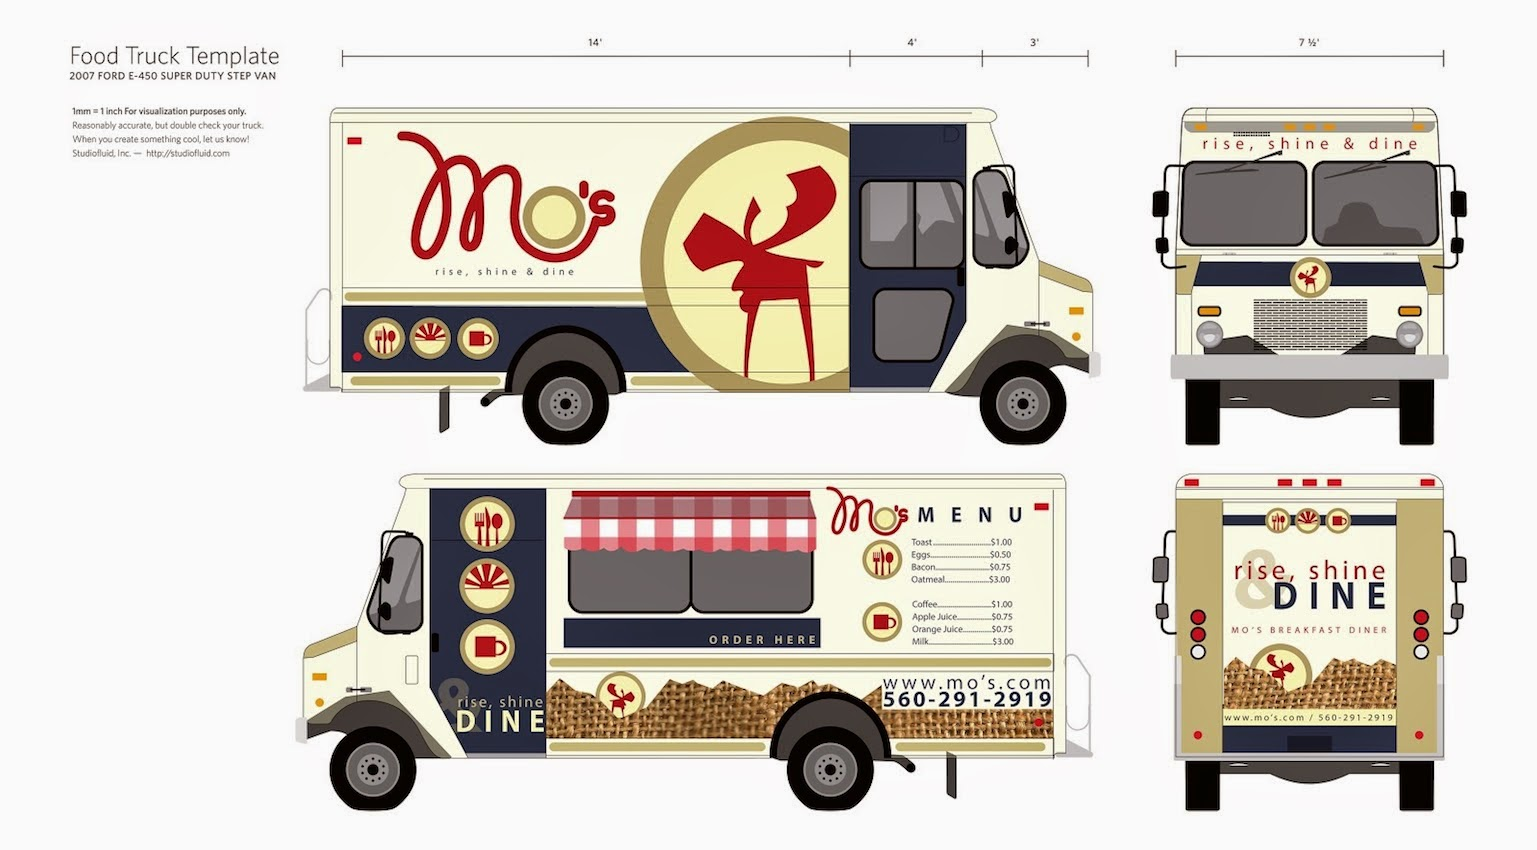 food truck design template mobile food business hidetailed food truck isolated on grey stock. Black Bedroom Furniture Sets. Home Design Ideas